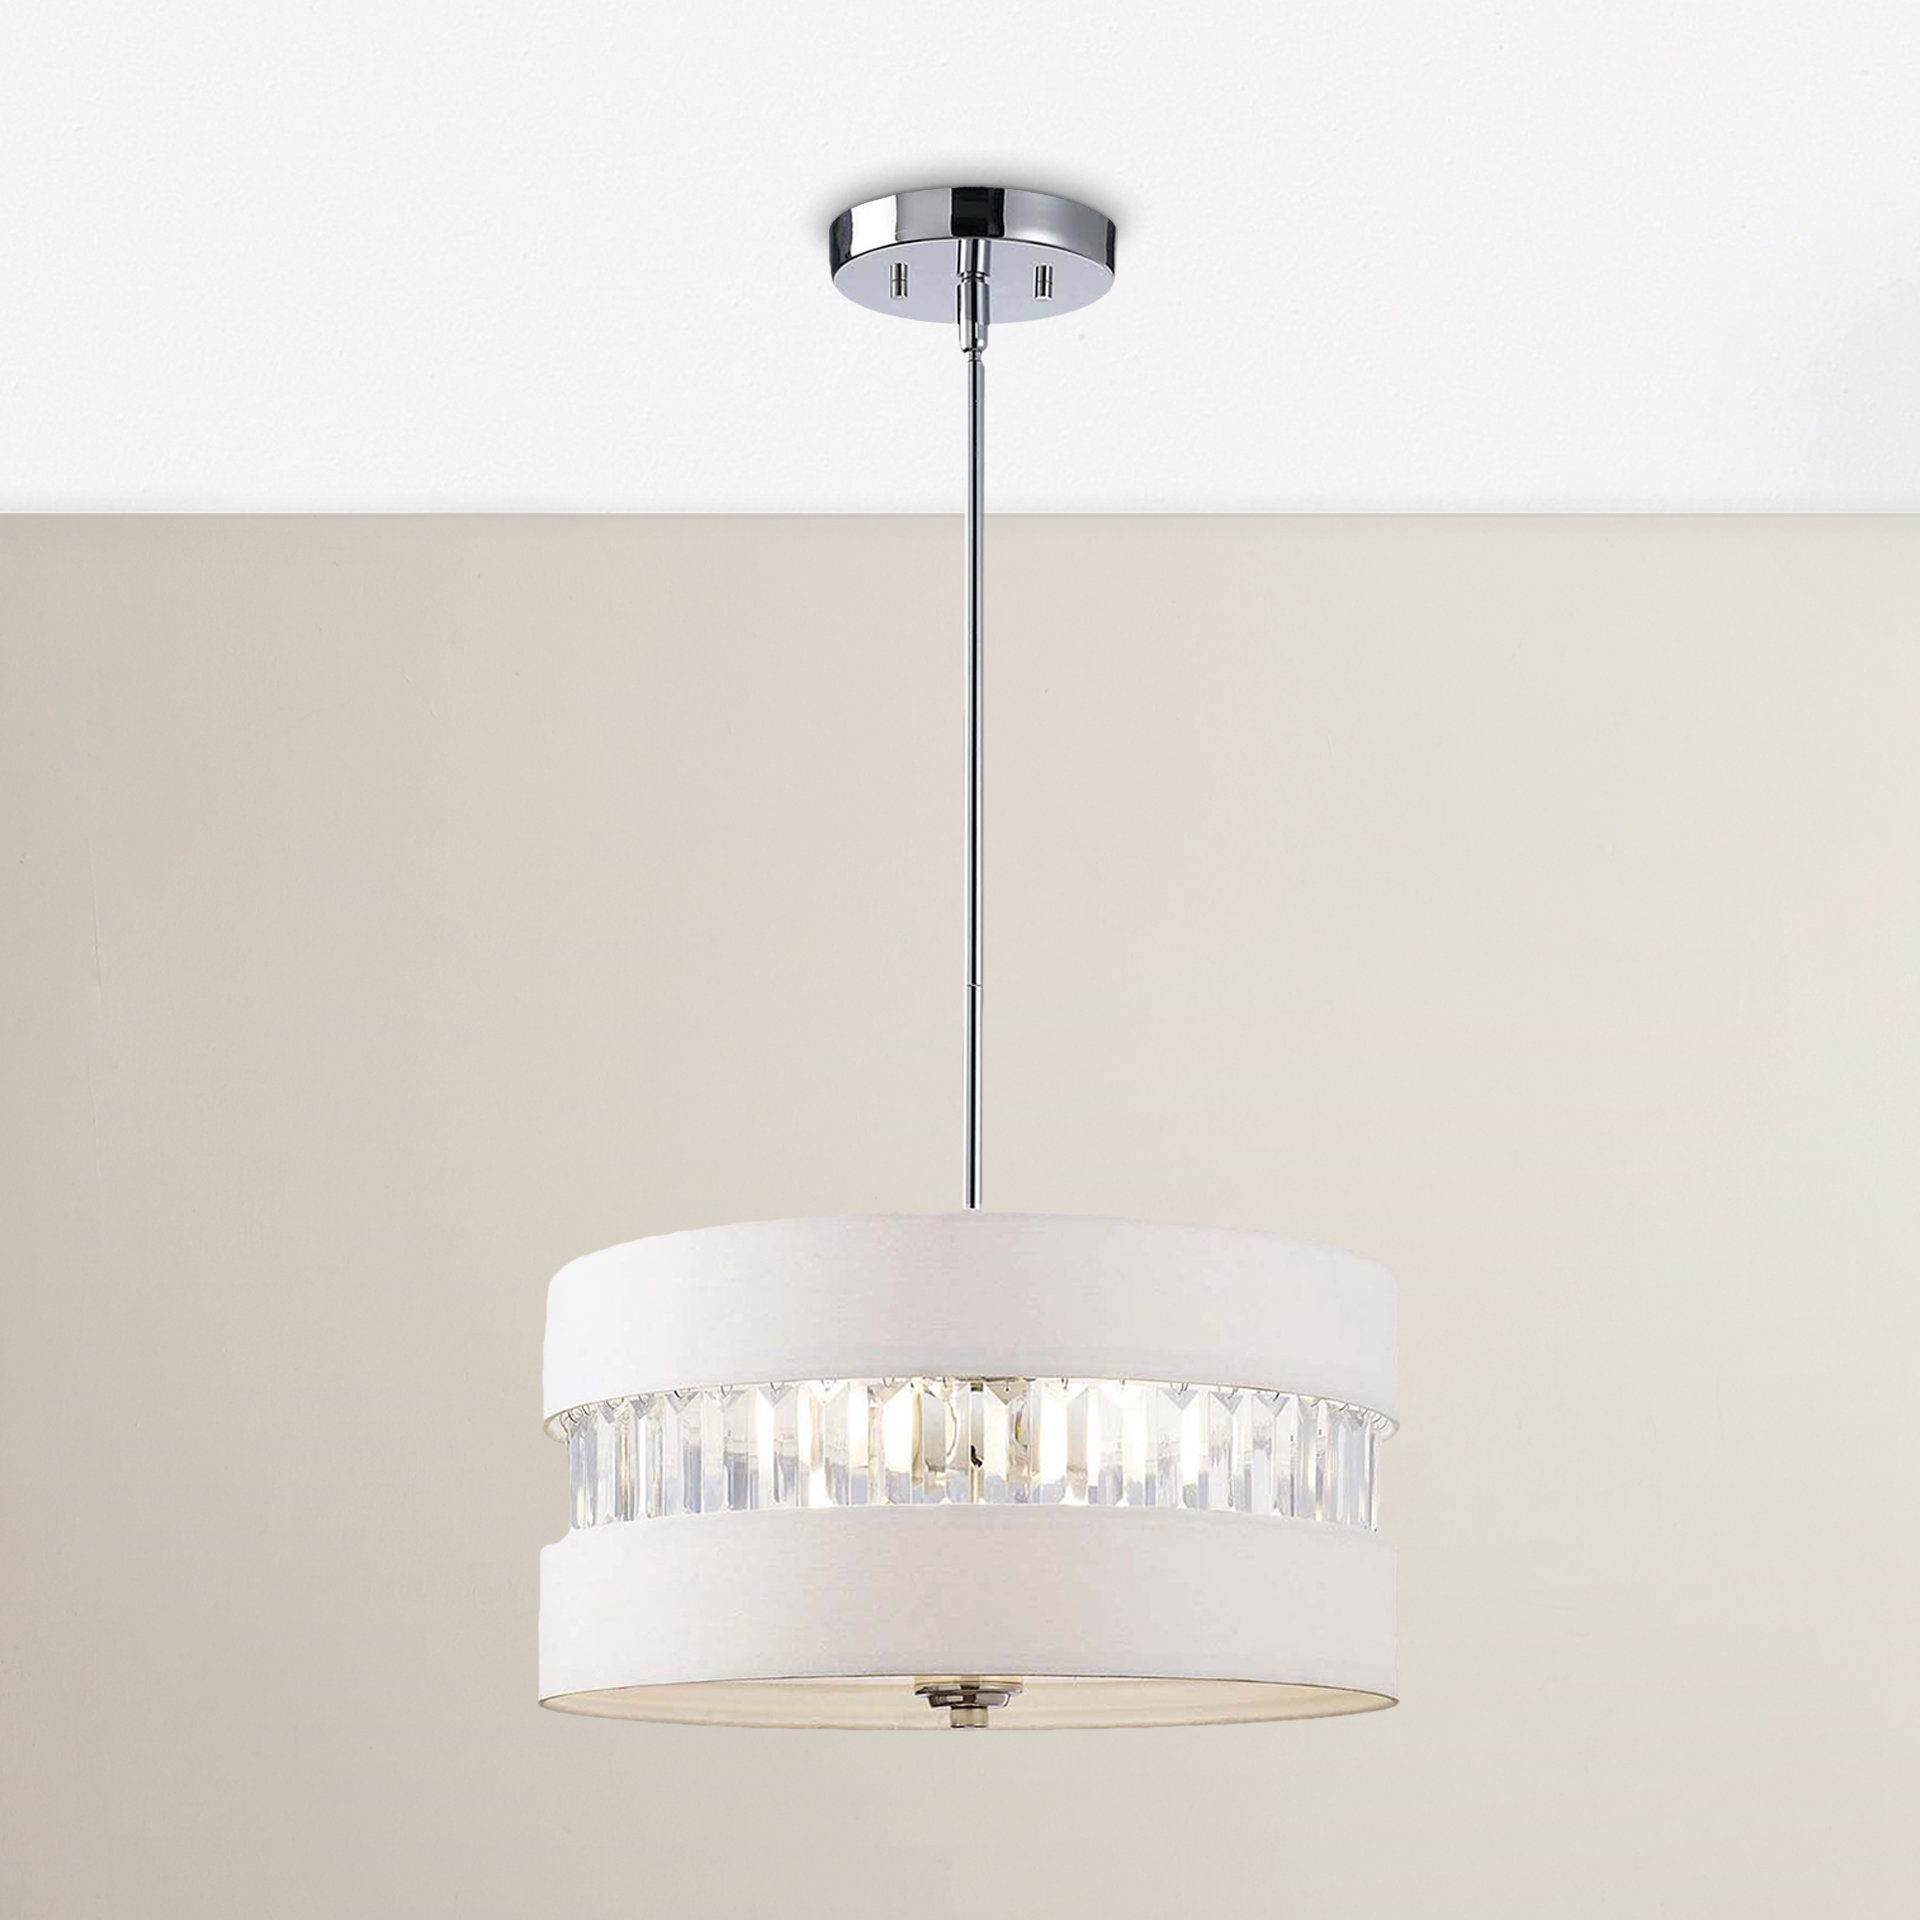 Ethelinde 3 Light Drum Chandelier Throughout Friedland 3 Light Drum Tiered Pendants (View 5 of 30)